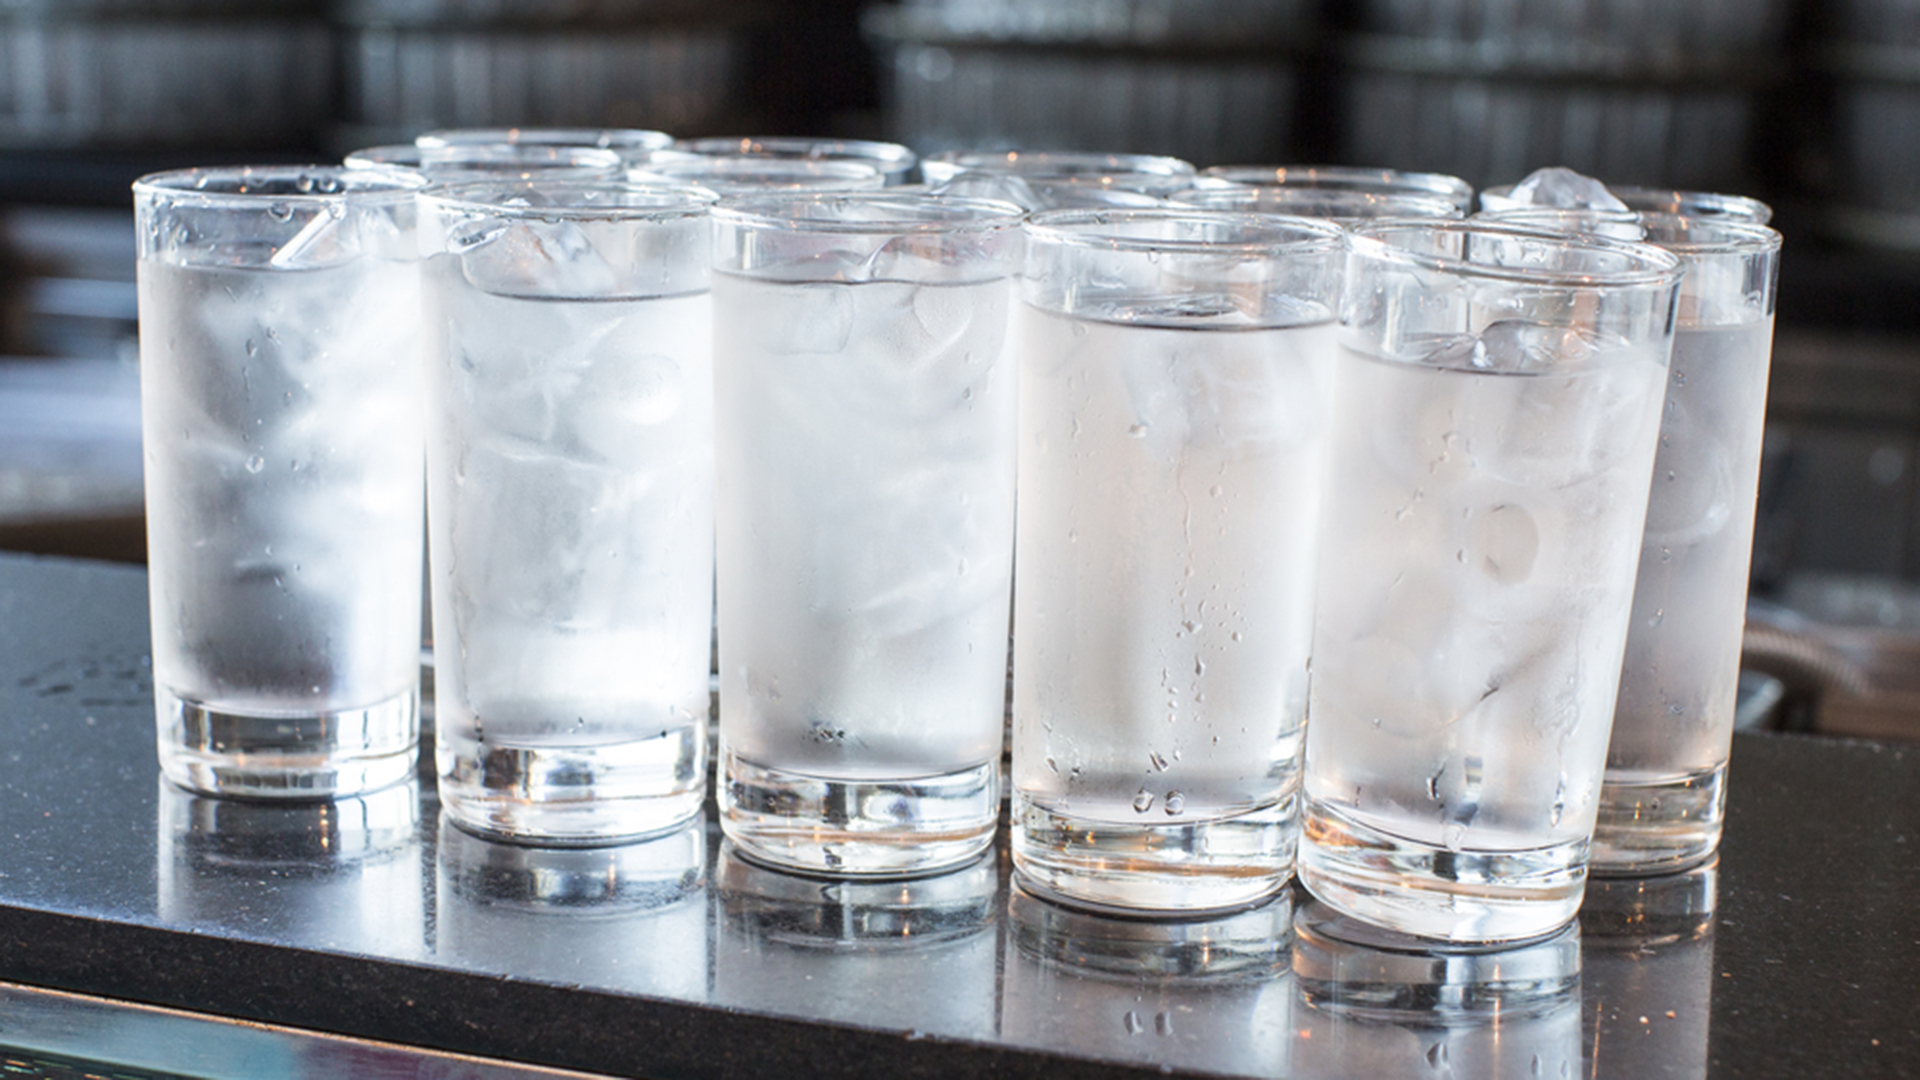 Should you drink warm or cold water when you wake up? Experts weigh in